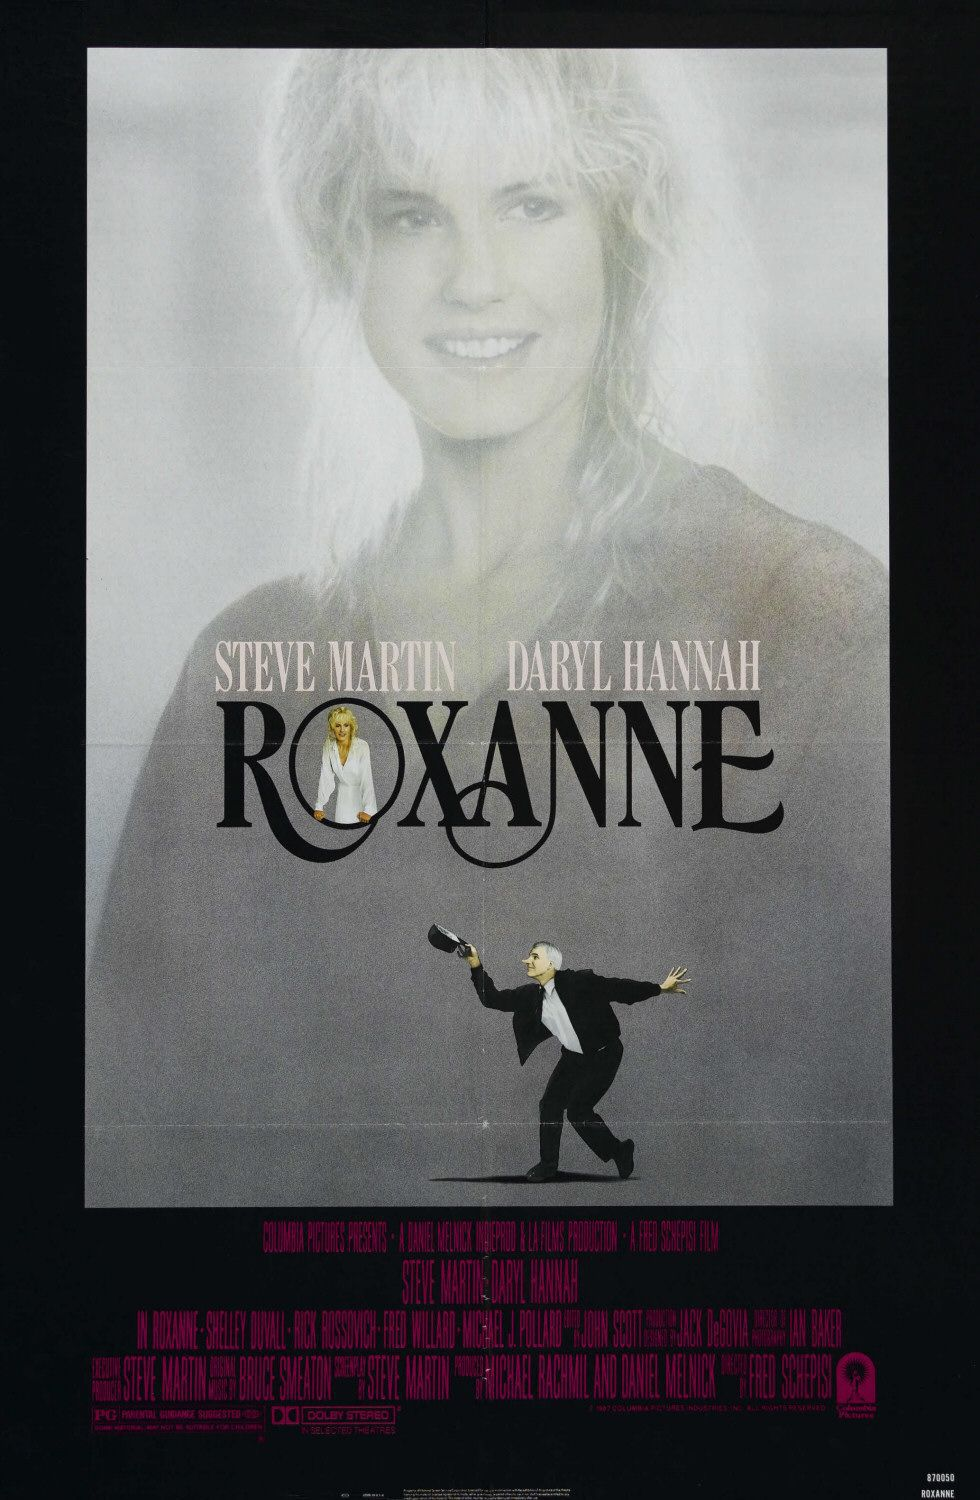 Roxanne (1987) - classic 80s love comedy film poster